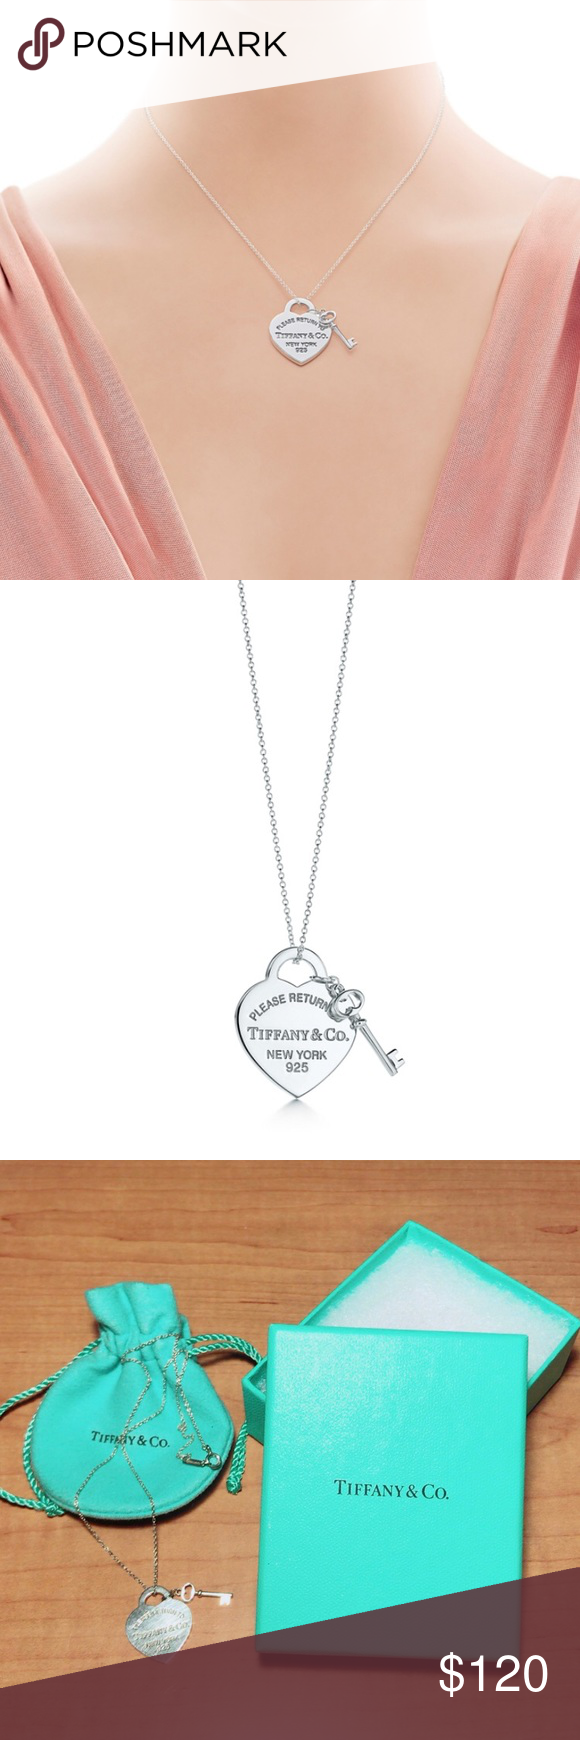 015296944cdf Tiffany   Co Heart Tag with Key Pendant Authentic Tiffany   Co necklace.  Barely worn. In excellent condition! No tag but comes with the pouch and  the box.